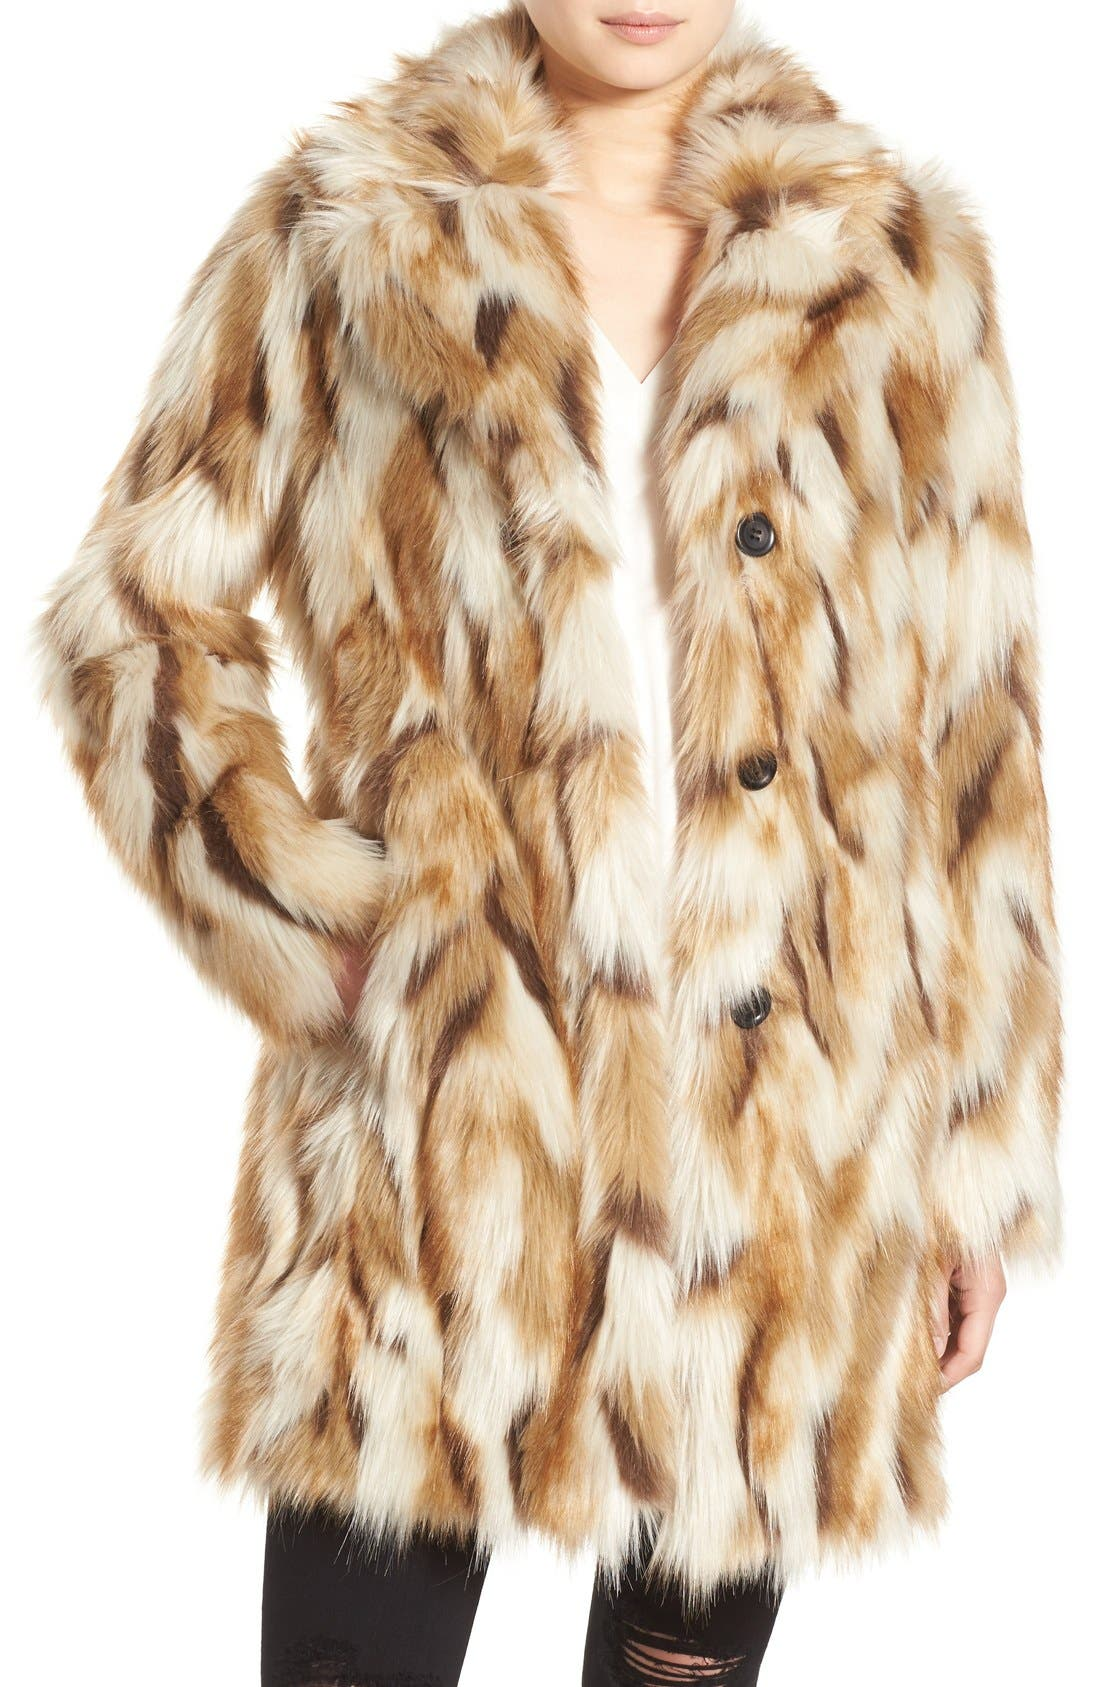 Main Image - 7 for All Mankind Faux Fur Coat